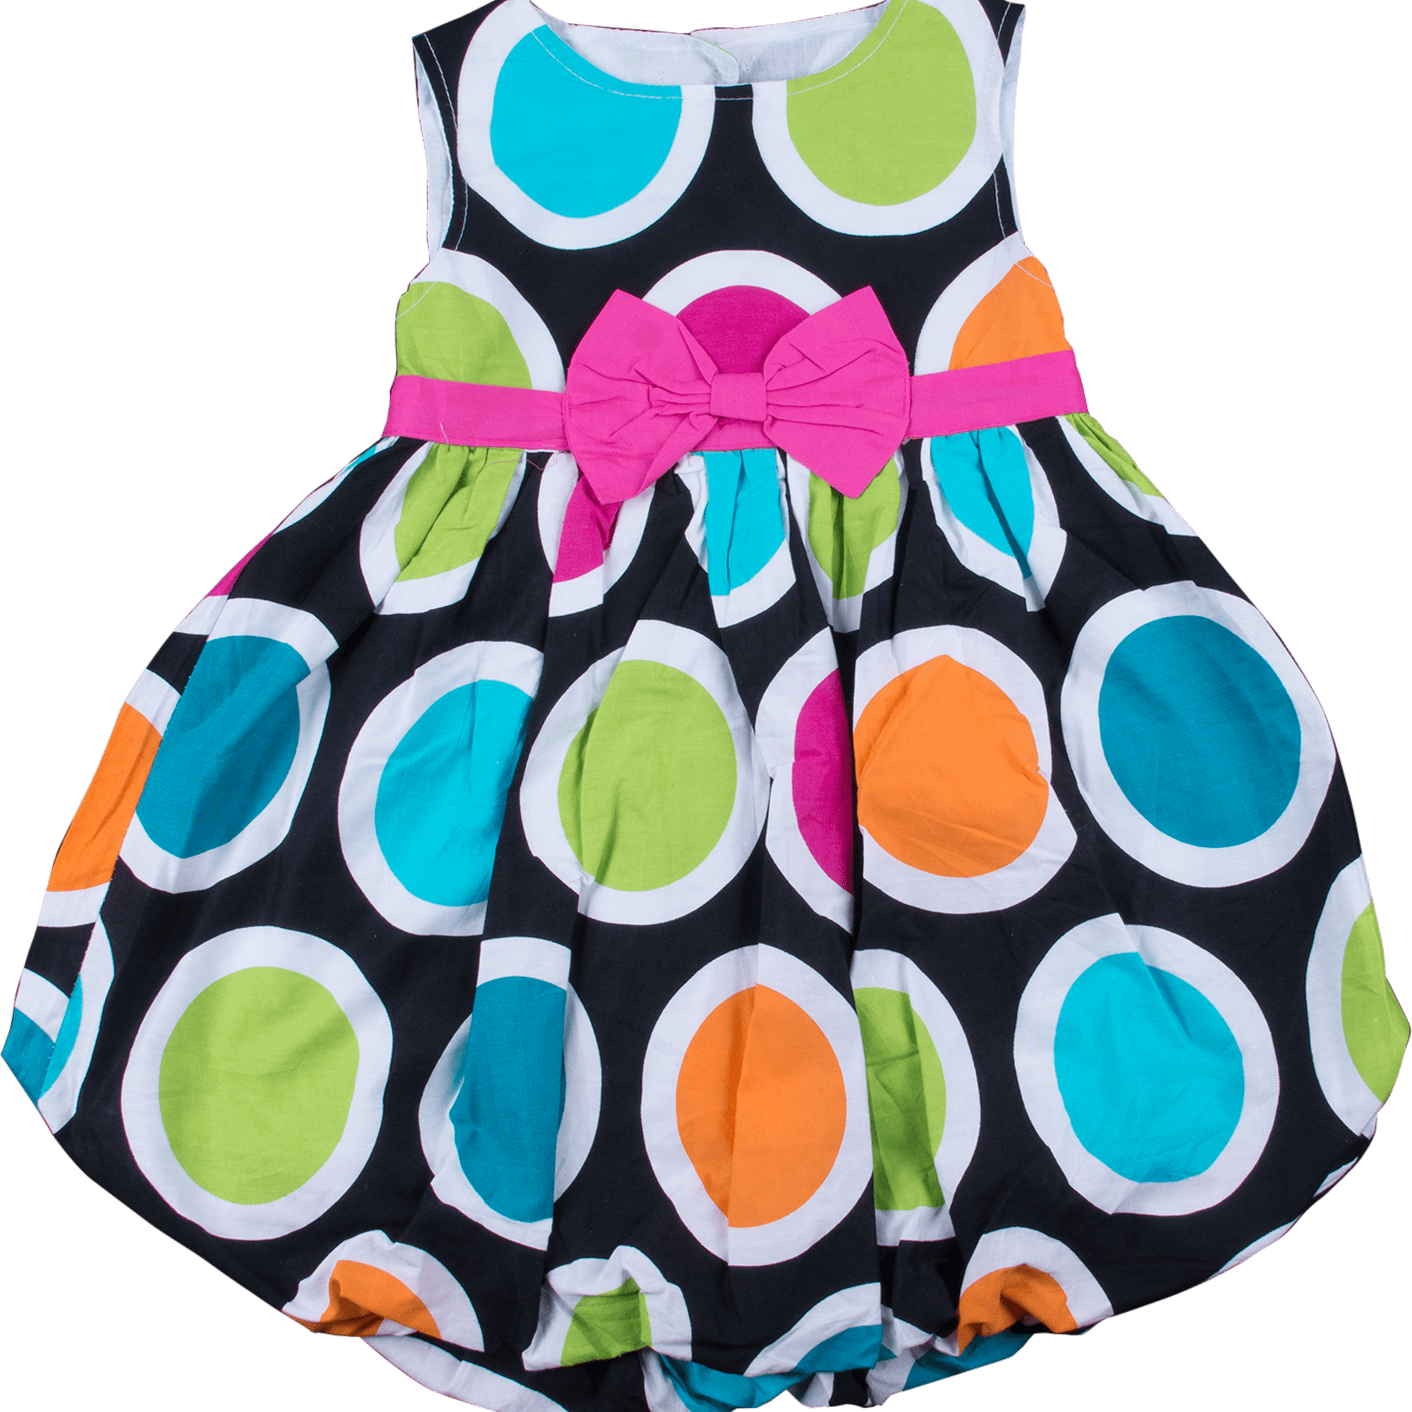 b01fa6b7cd31 Sleeveless Balloon Baby and Toddler Dress - Clearance Up to 70% Off